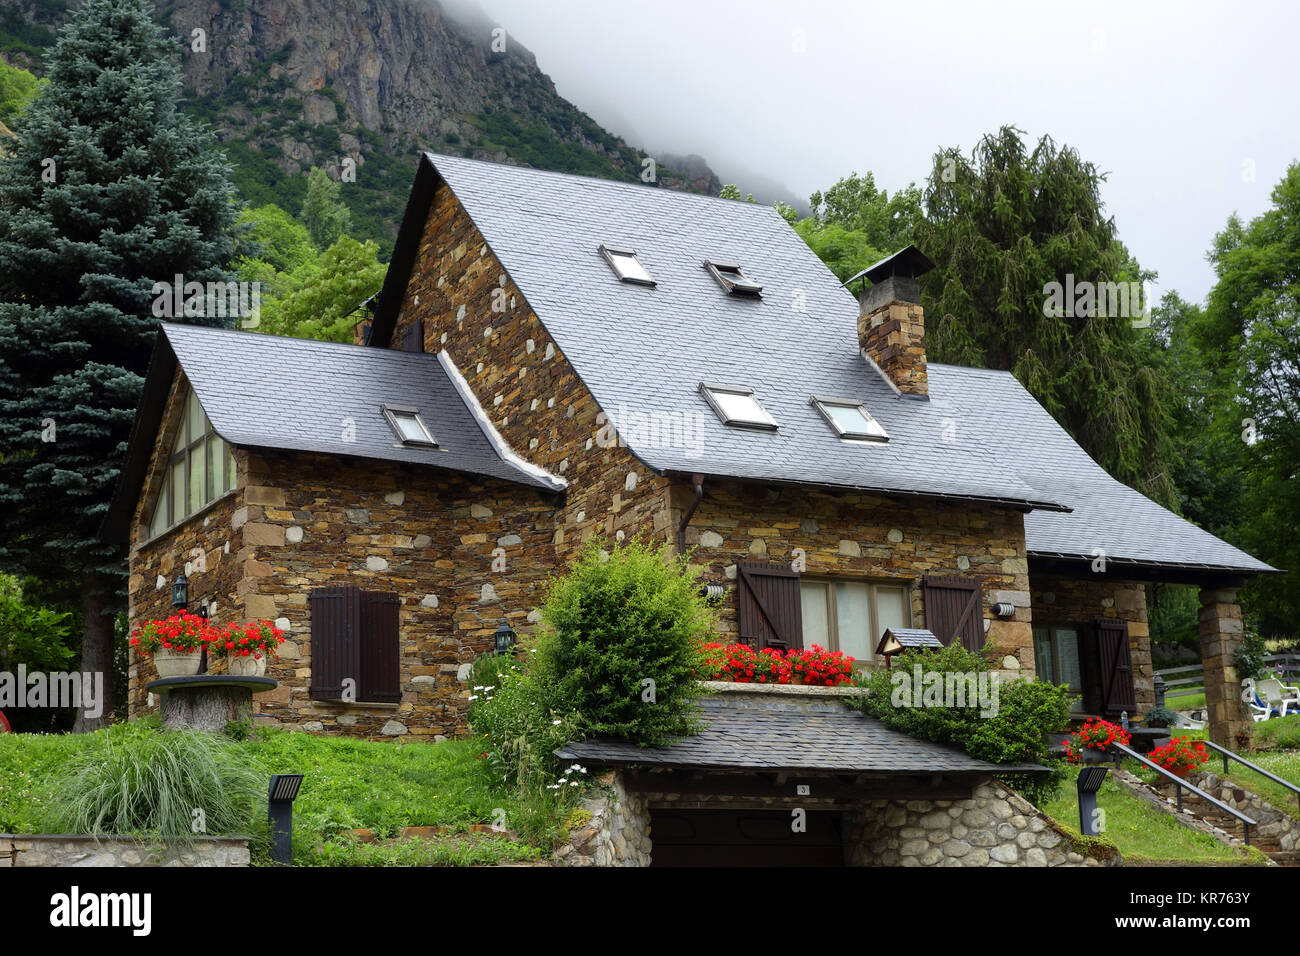 house of quarry stone in the pyrenees - Stock Image